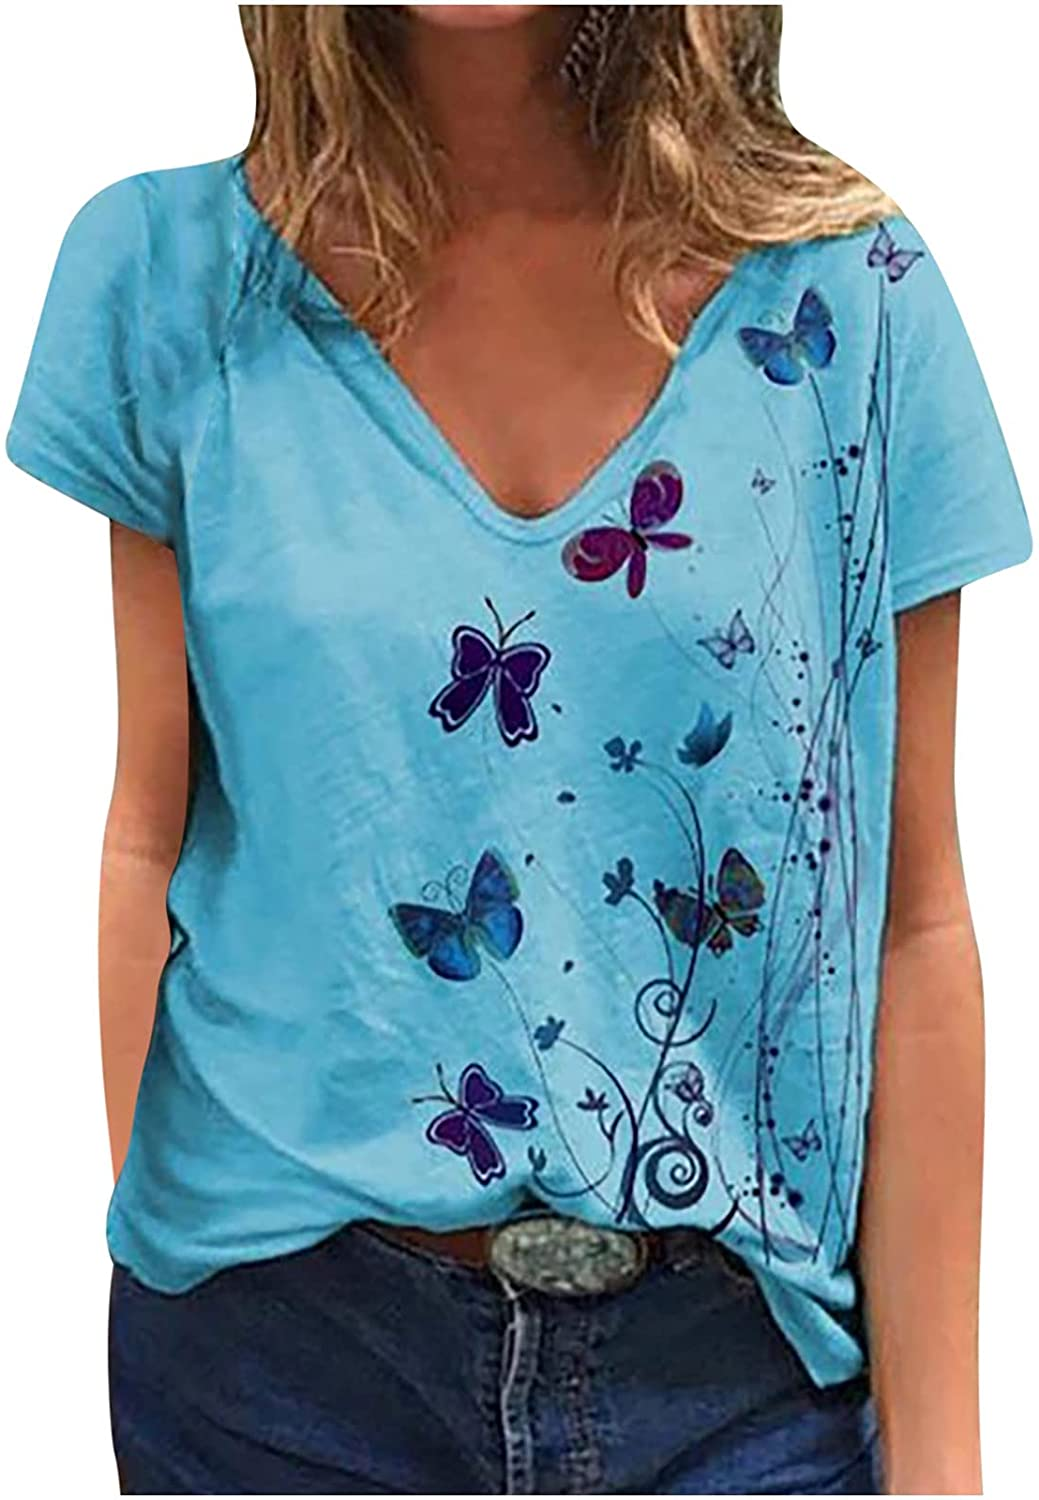 Regular discount Women's Short Sleeve Butterfly print V-neck Blouses Shirts Vint Now free shipping